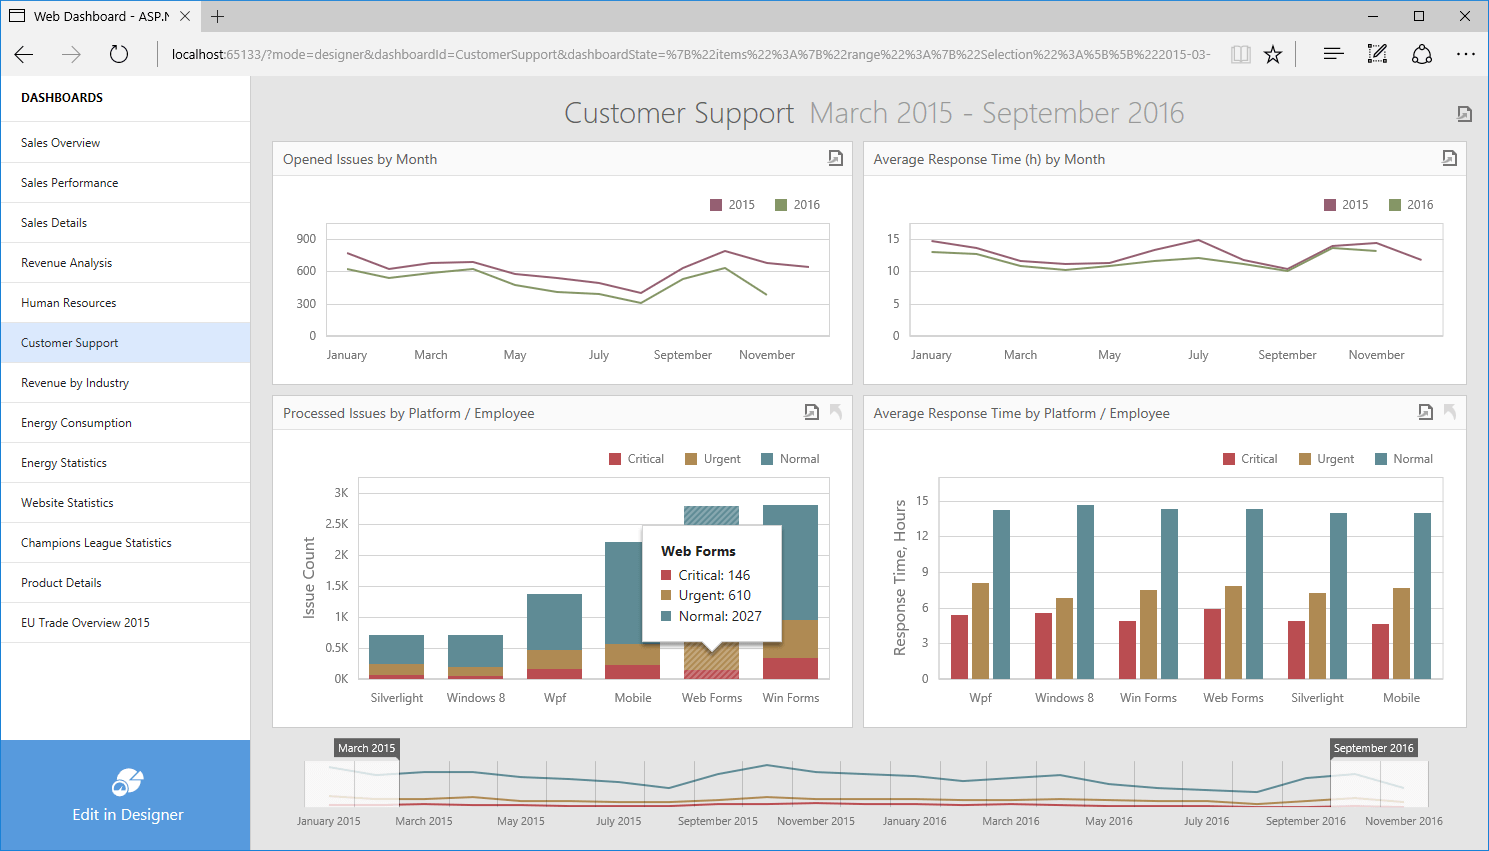 Integrated Web Dashboard Viewer